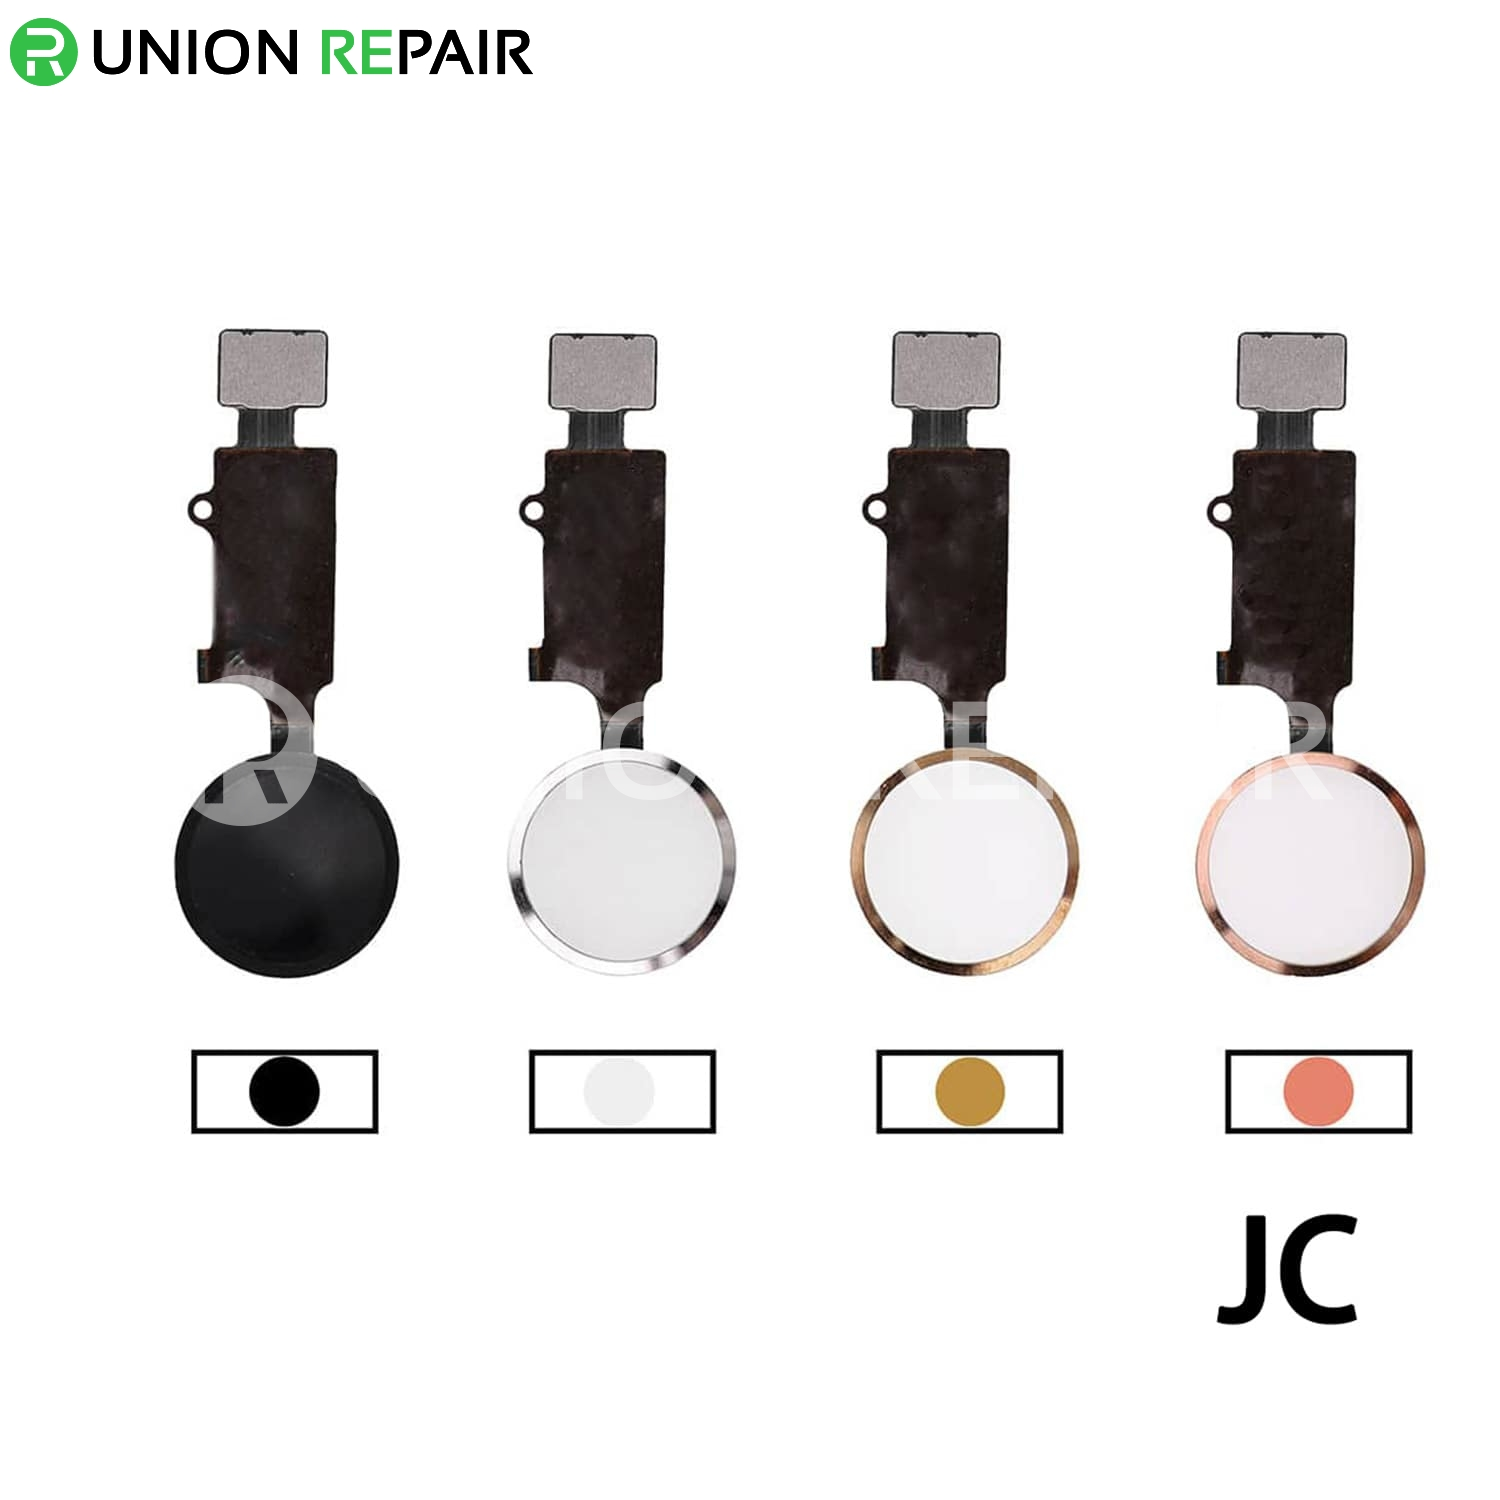 JC Universal Home Button with Return Function for iPhone 7/7Plus/8/8Plus